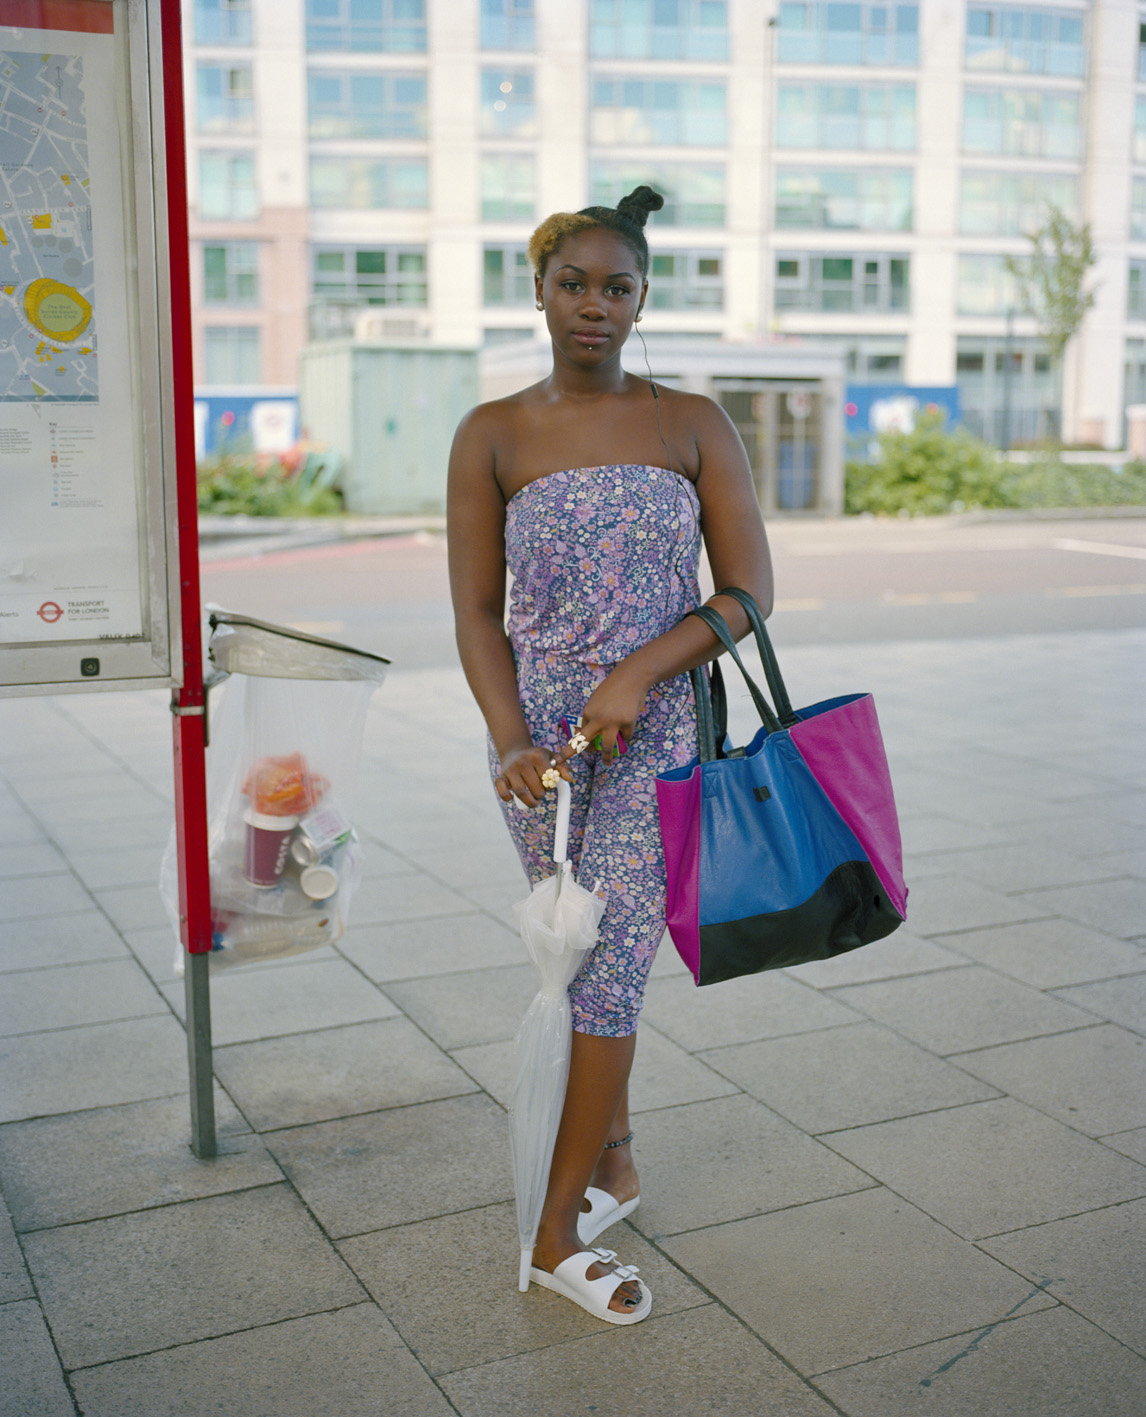 Via Vauxhall, London - 2013/2014